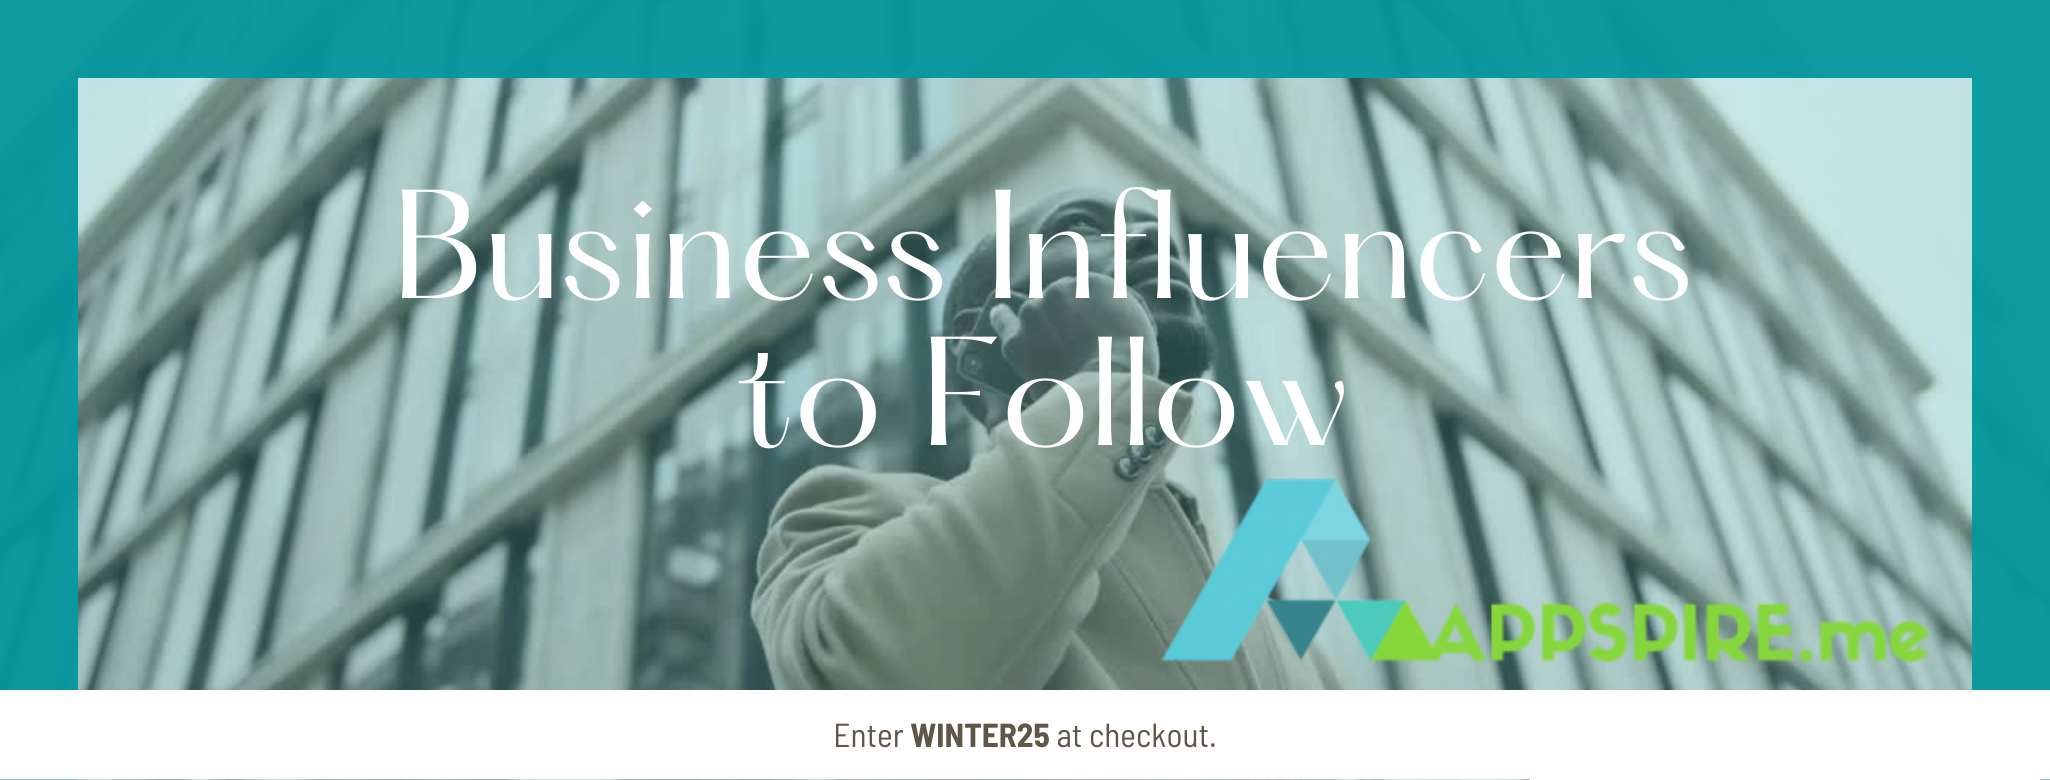 Business Influencers to Follow in 2021